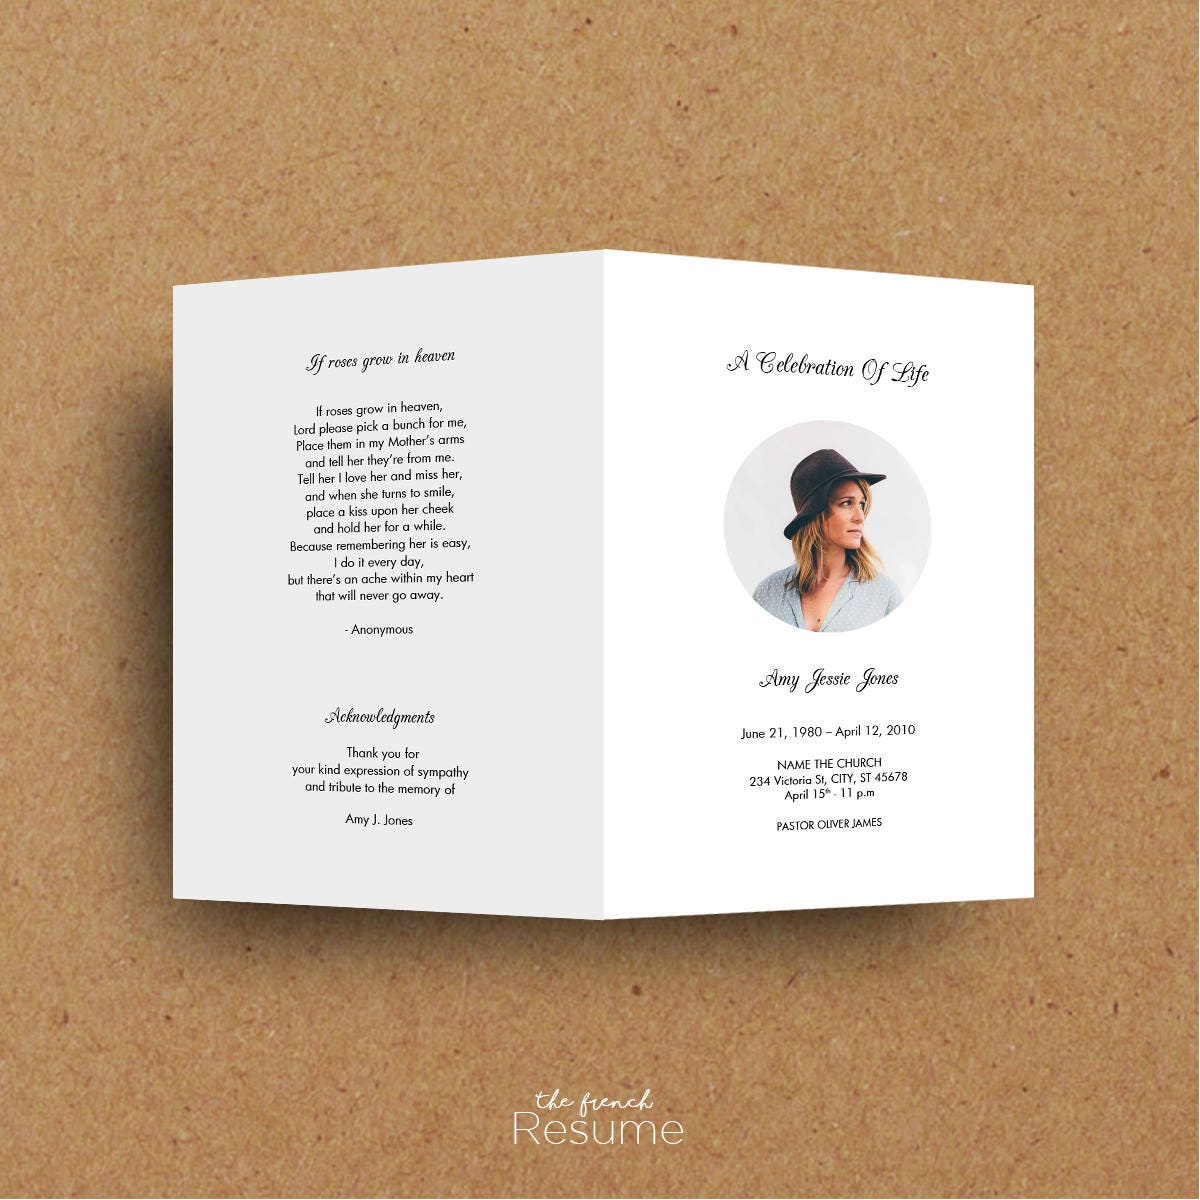 Funeral Program Template - MS Word - Printable - Instant Download - PROMO